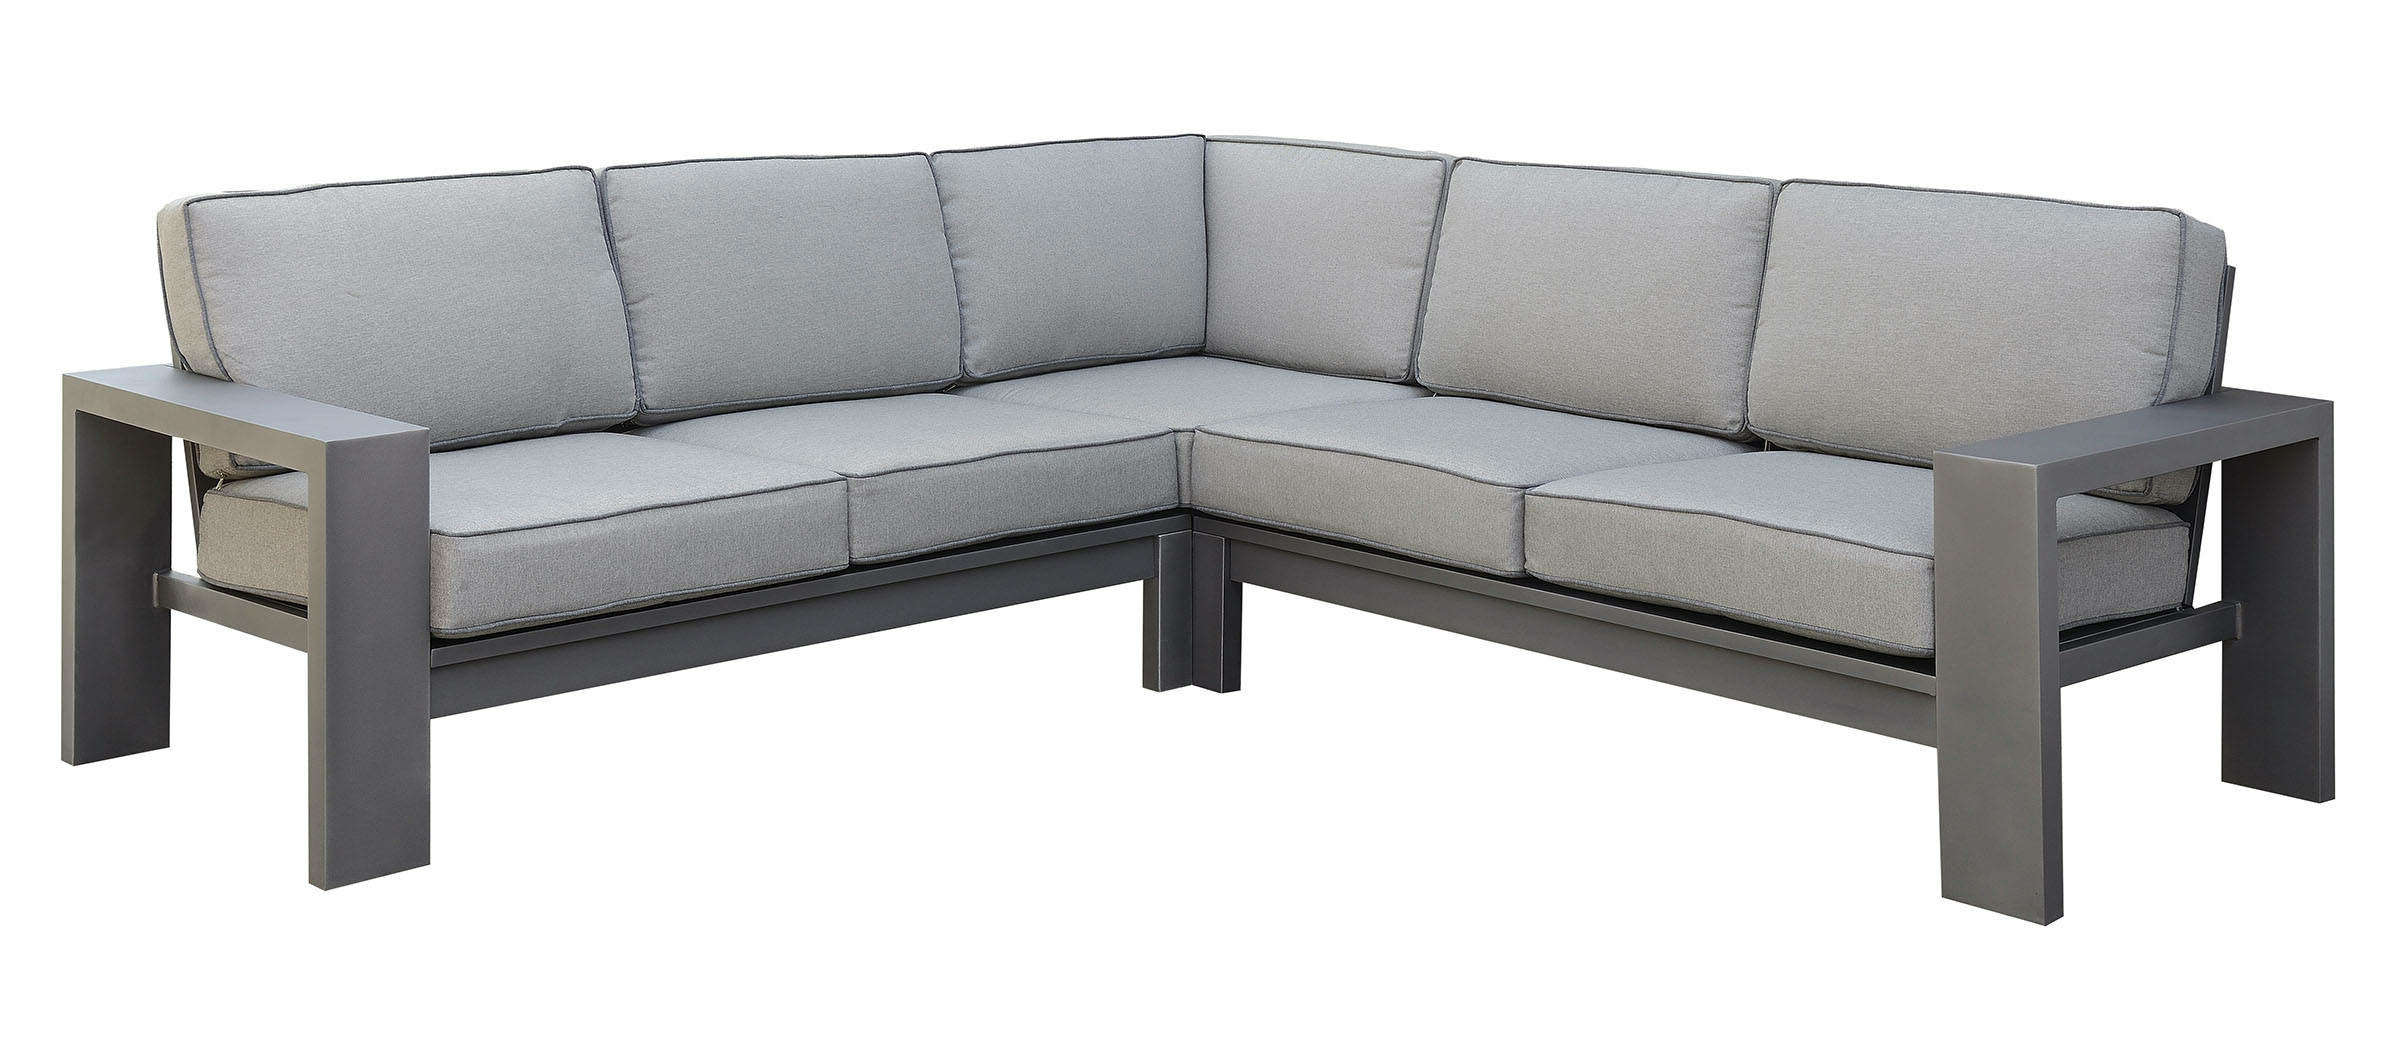 Baca Patio Sofas With Cushions With Regard To Best And Newest Ria Patio Sectional With Cushions (View 6 of 25)